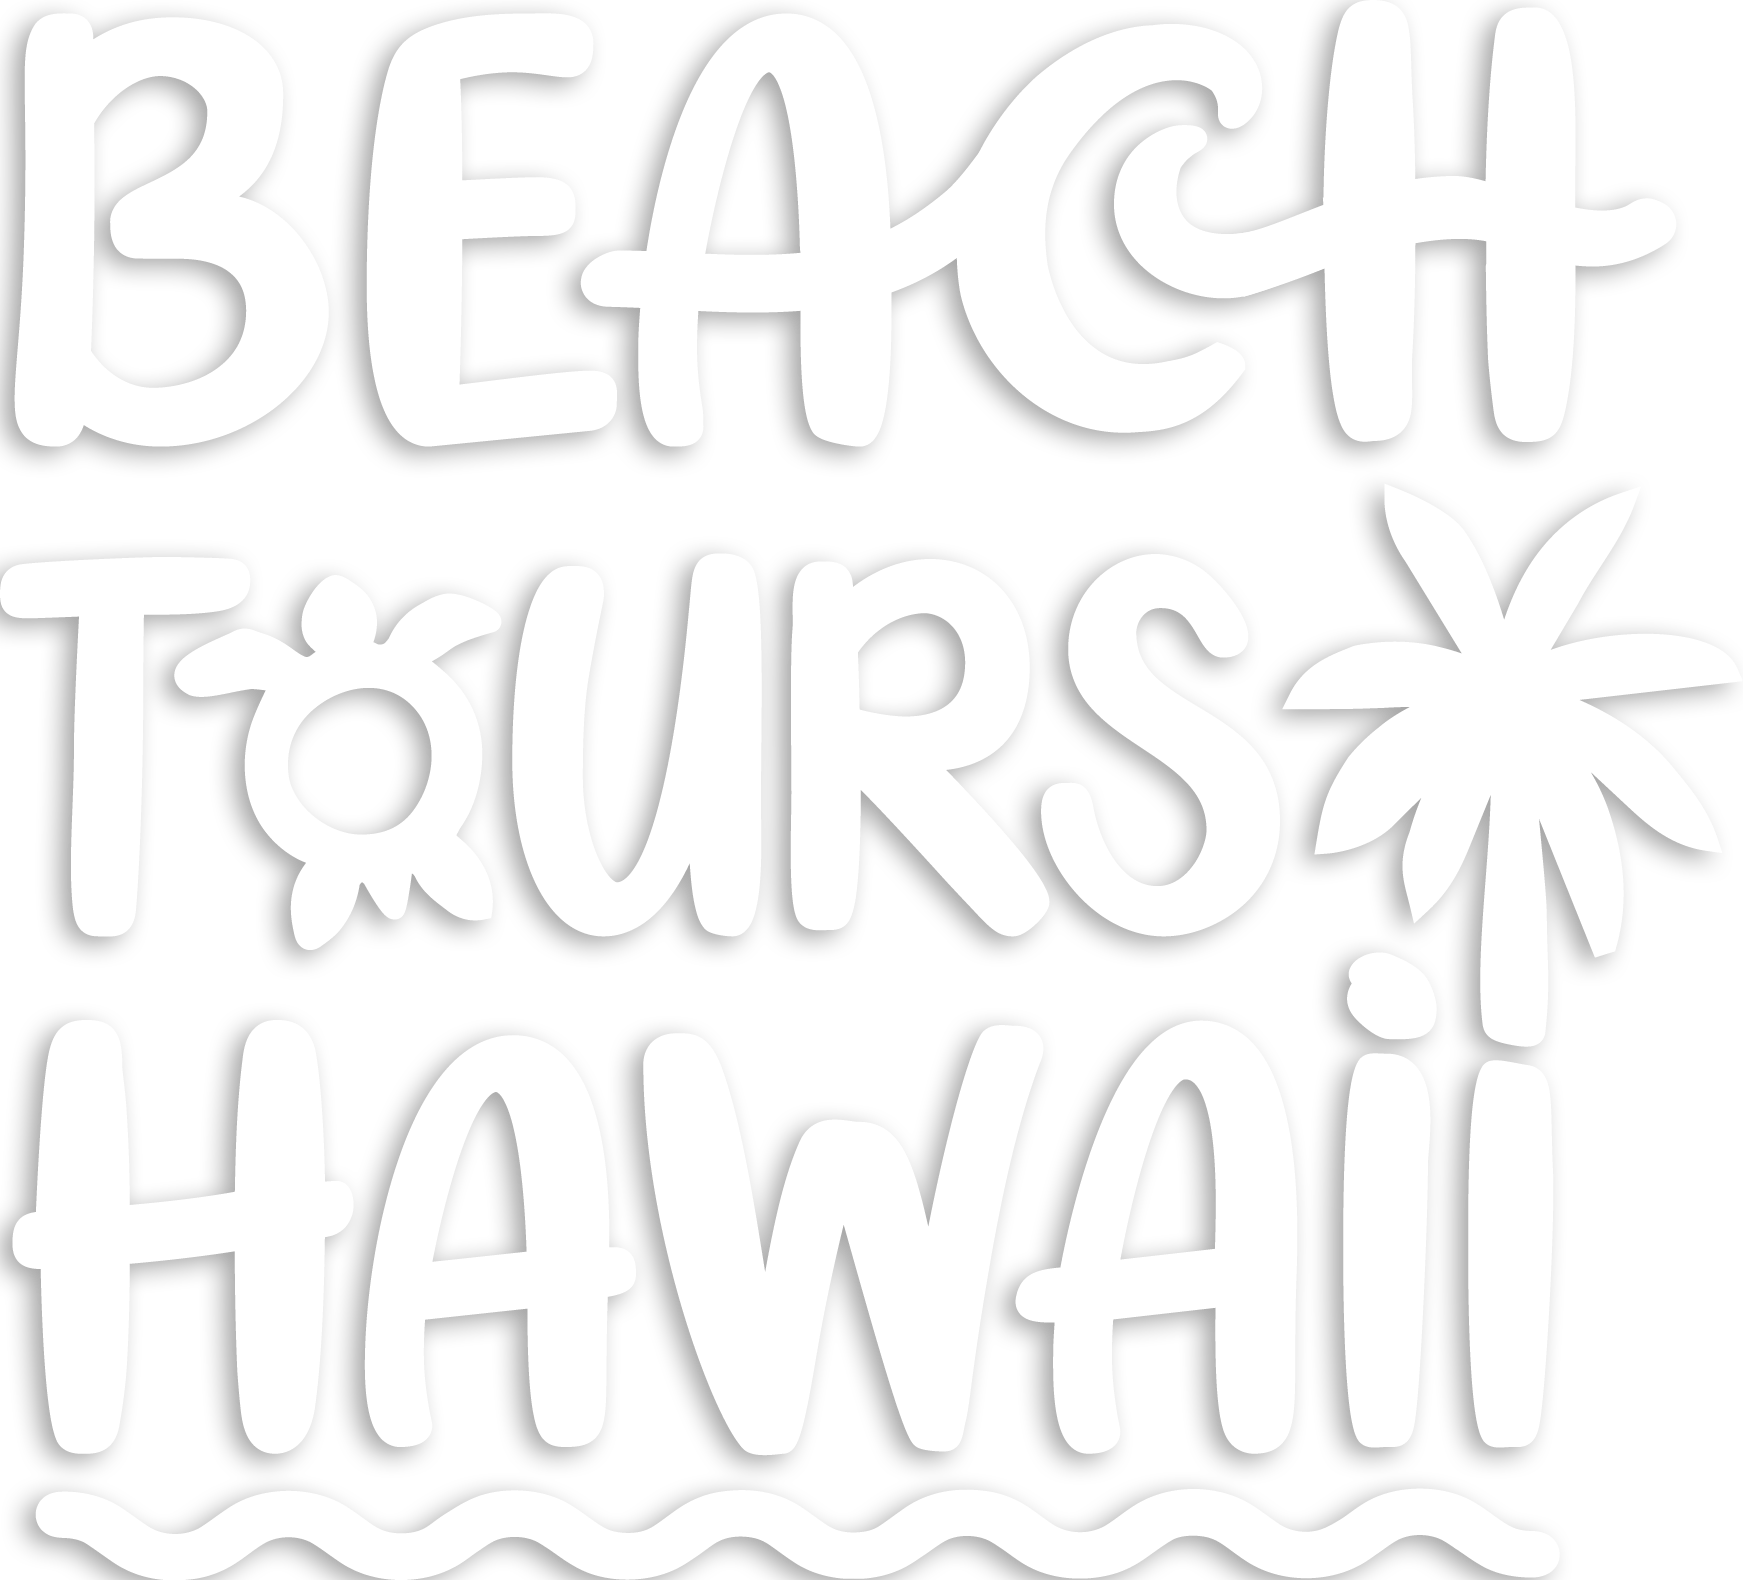 Beach Tours Hawaii